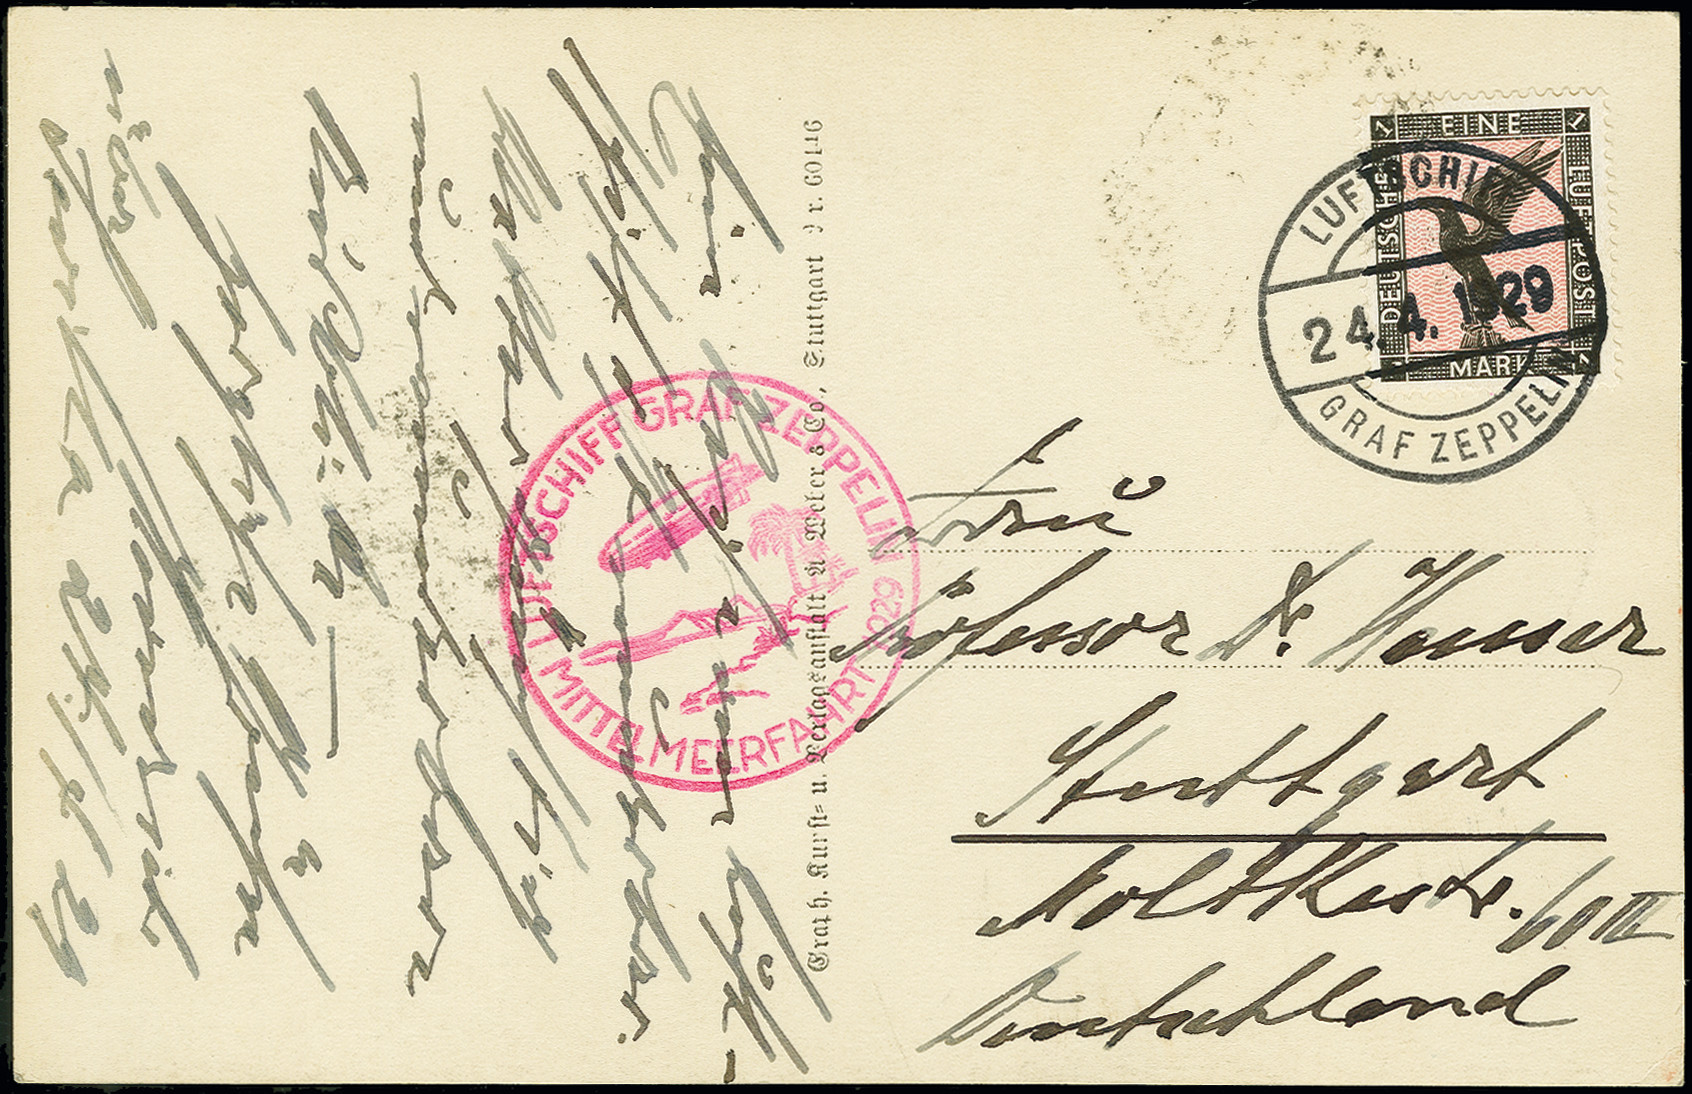 Lot 1167 - airmail zeppelin -  Heinrich Koehler Auktionen Auction #368- Day 2